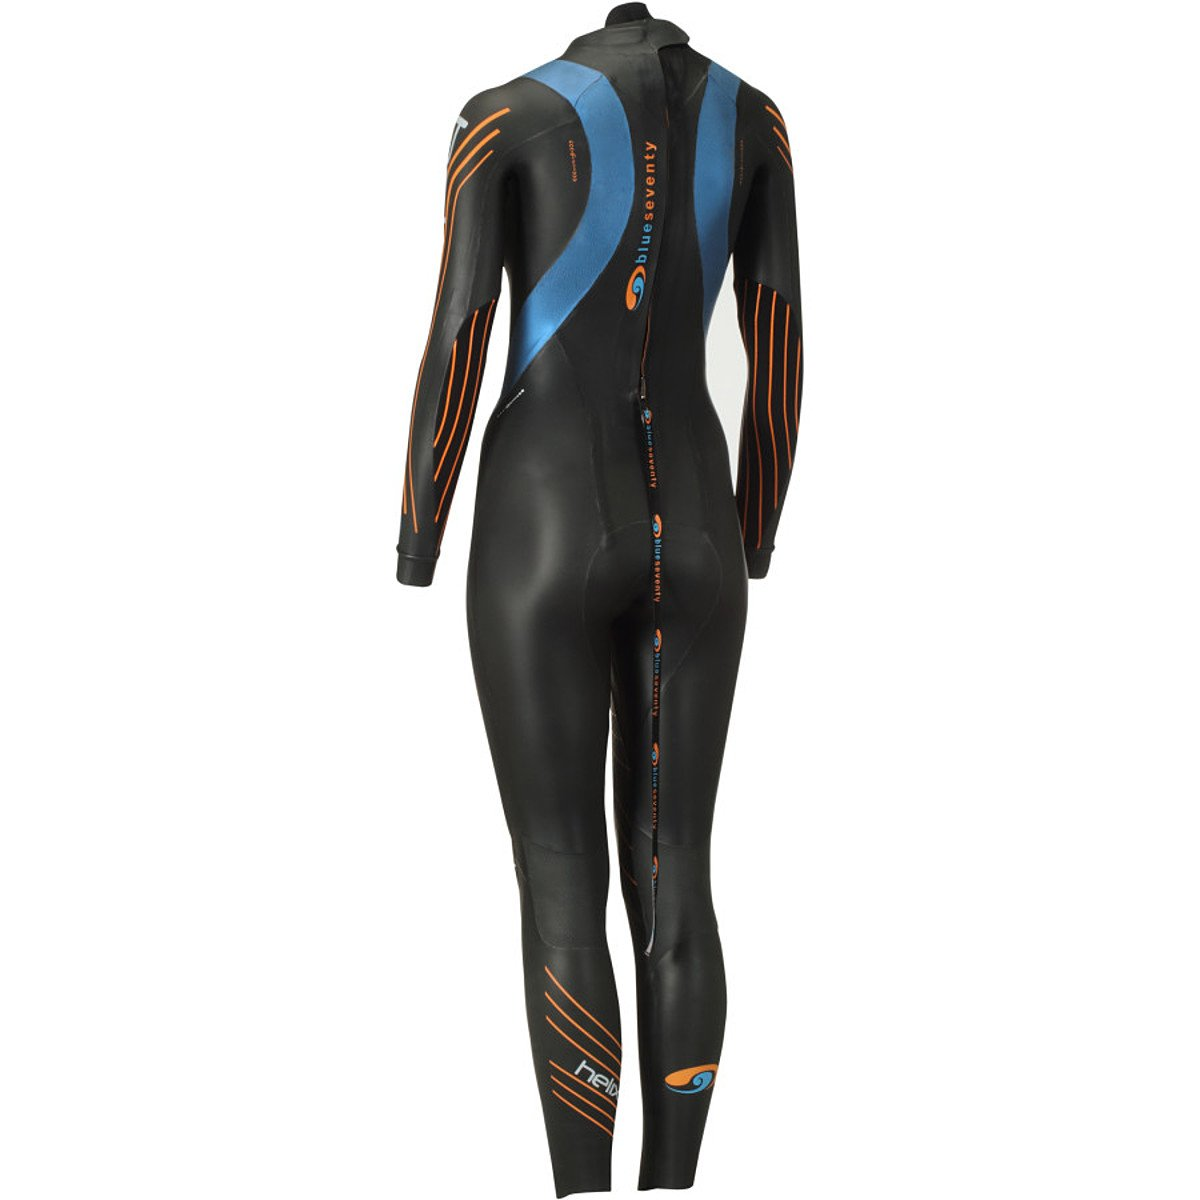 00ba1df77152 Amazon.com: blueseventy Helix Full Wetsuit - Women's One Color (WLA):  Sports & Outdoors